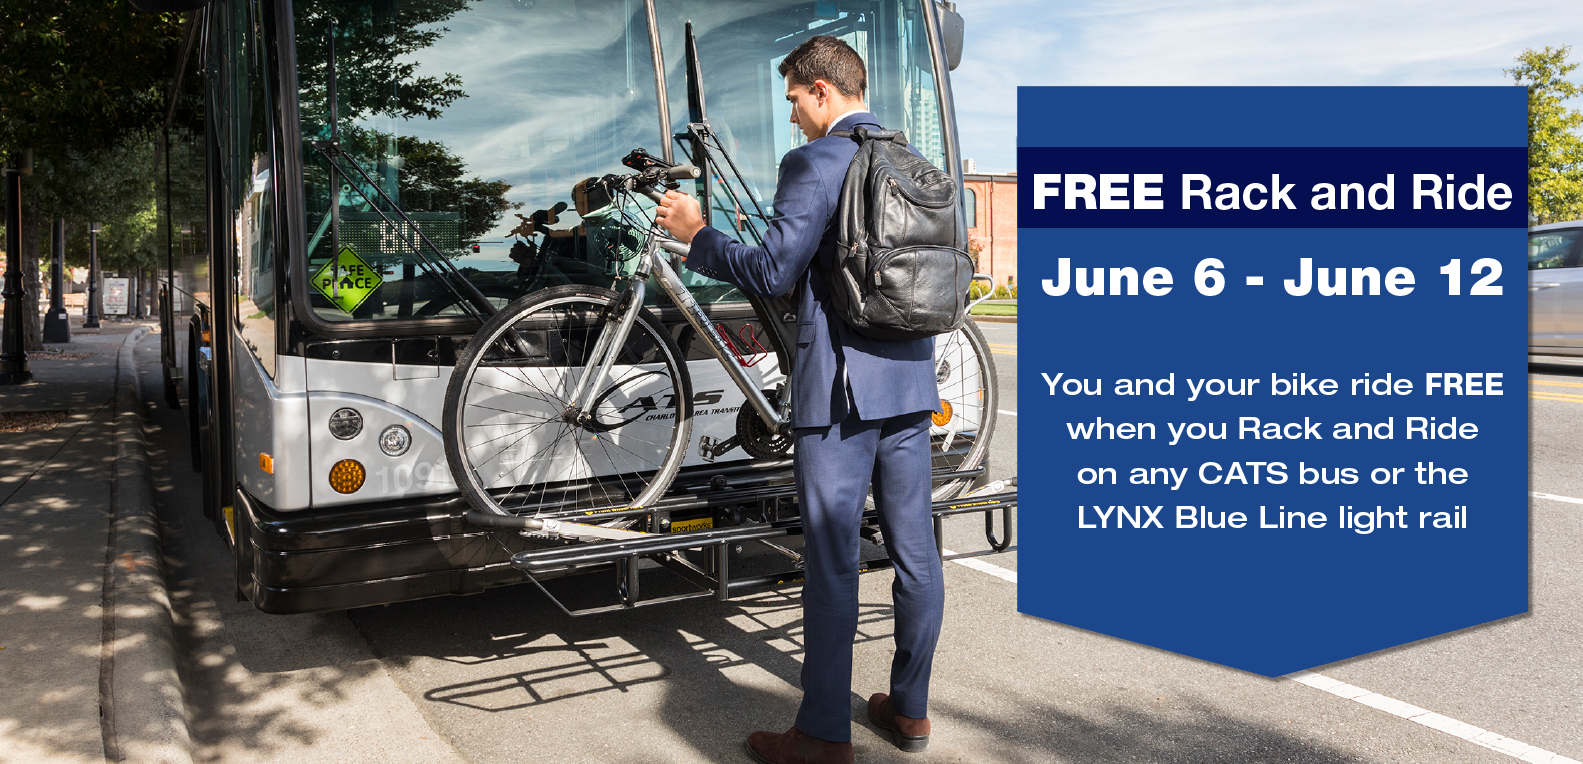 Free Rack and Ride April 30th - May 6th